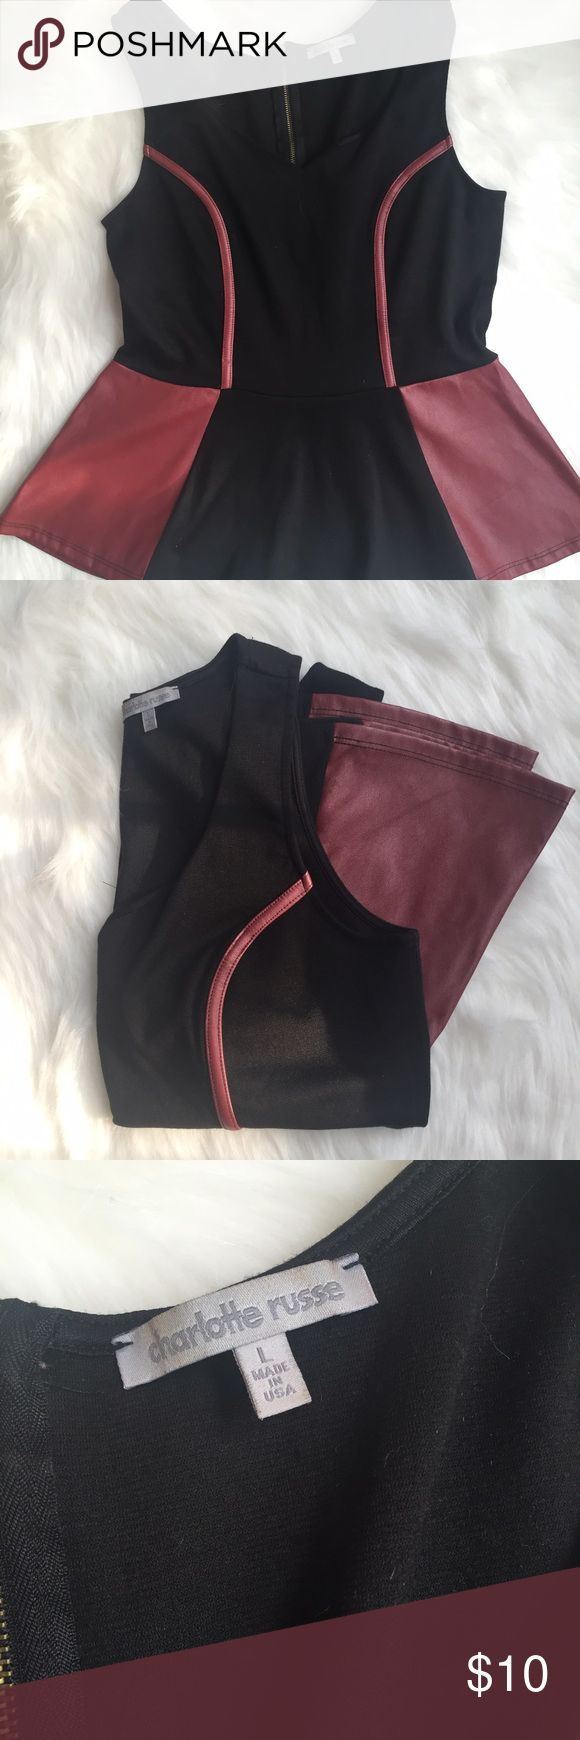 Black and Red Peplum Top w/ faux leather details Black and red peplum top with faux leather details. Size L. Lightly worn. Charlotte Russe Tops Tank Tops